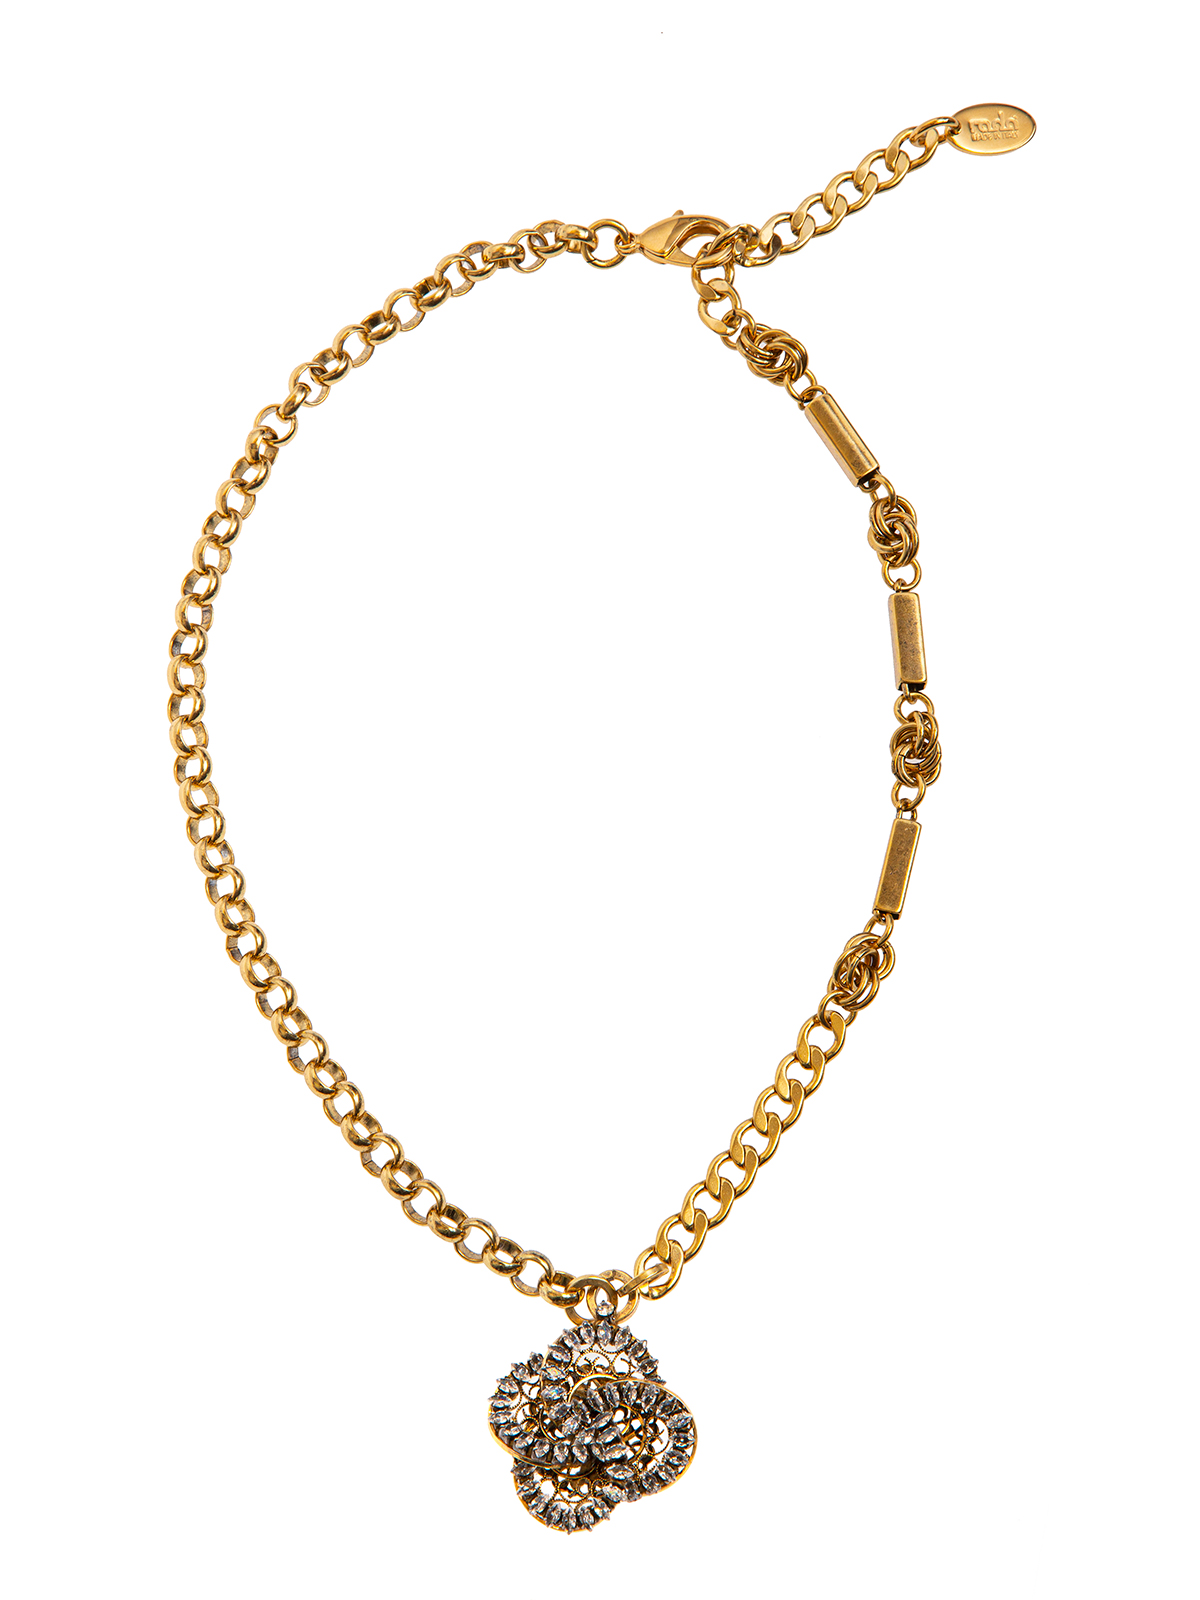 Mixed chain necklace with  jewel pinwheel charm embroidered with stones